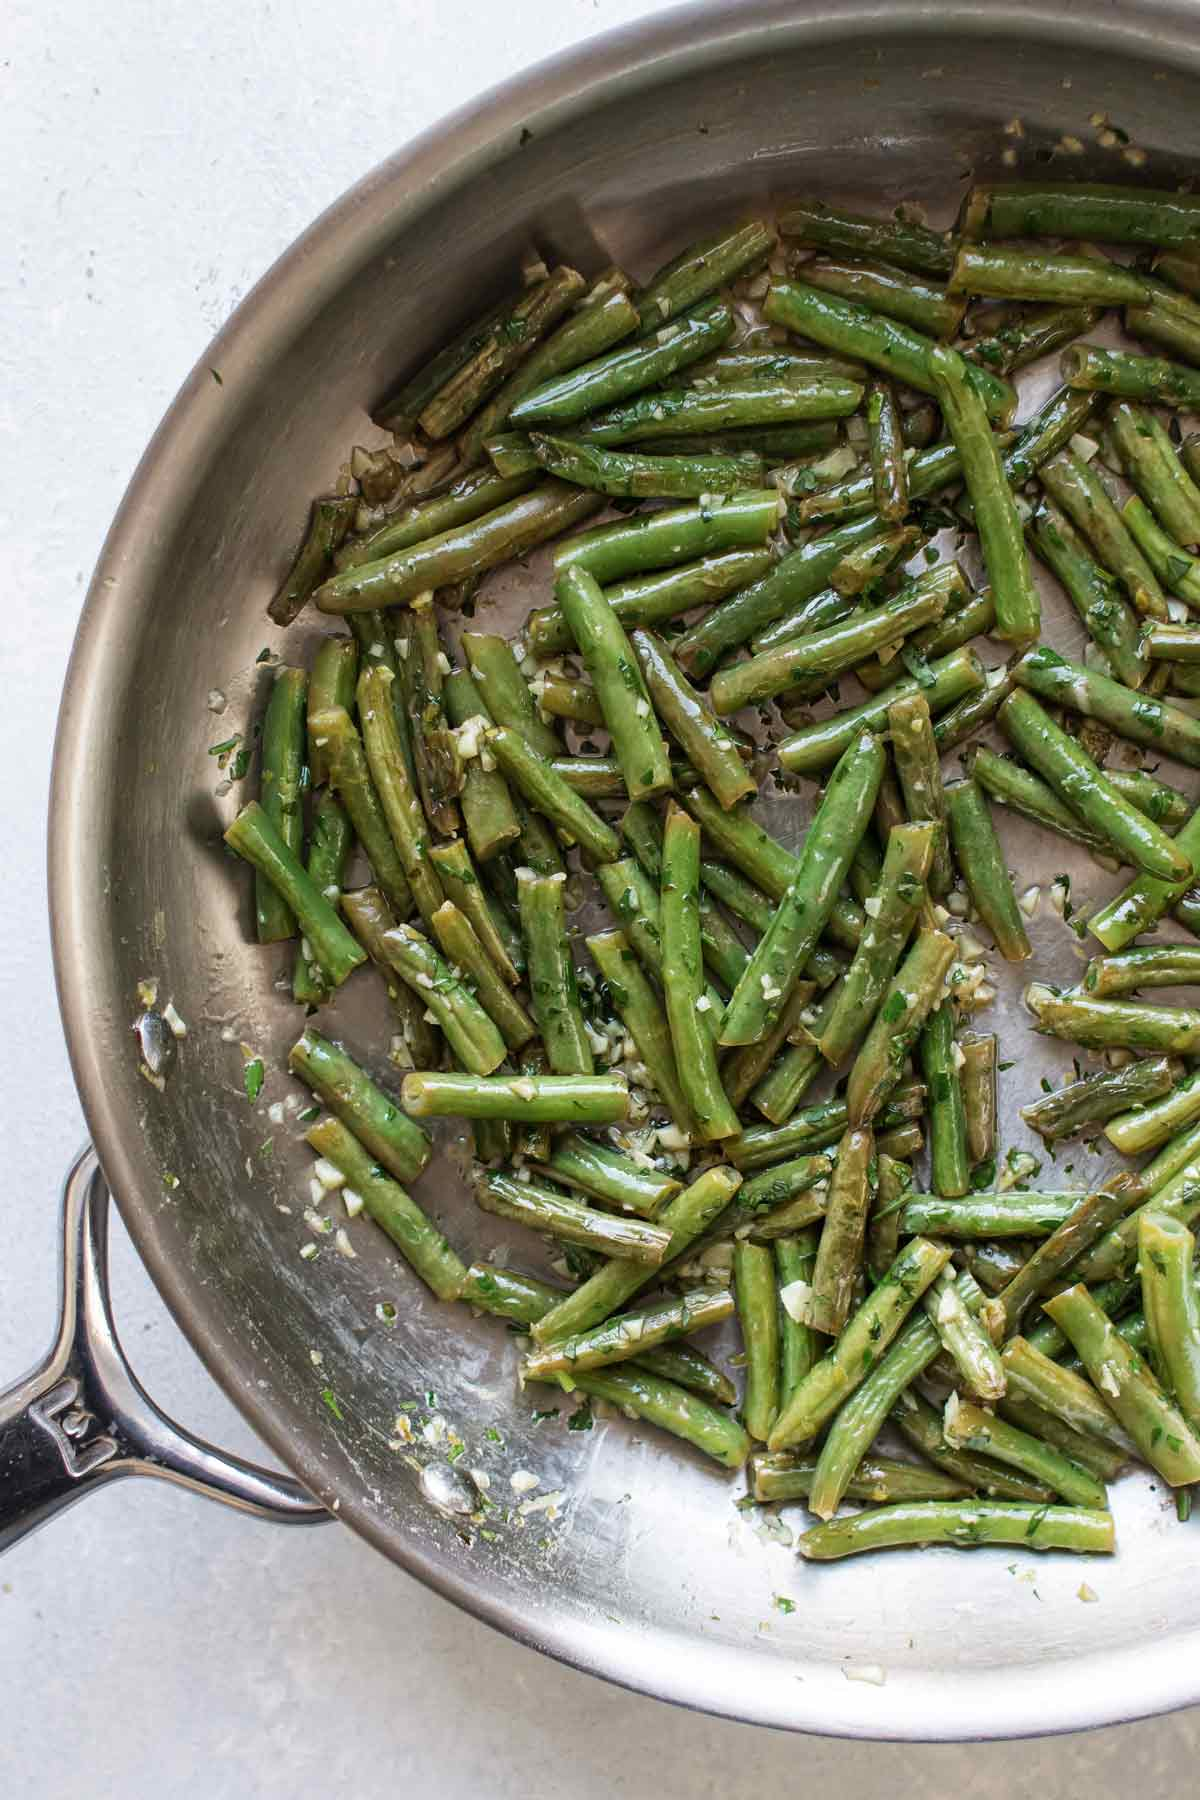 the finished green beans in a skillet